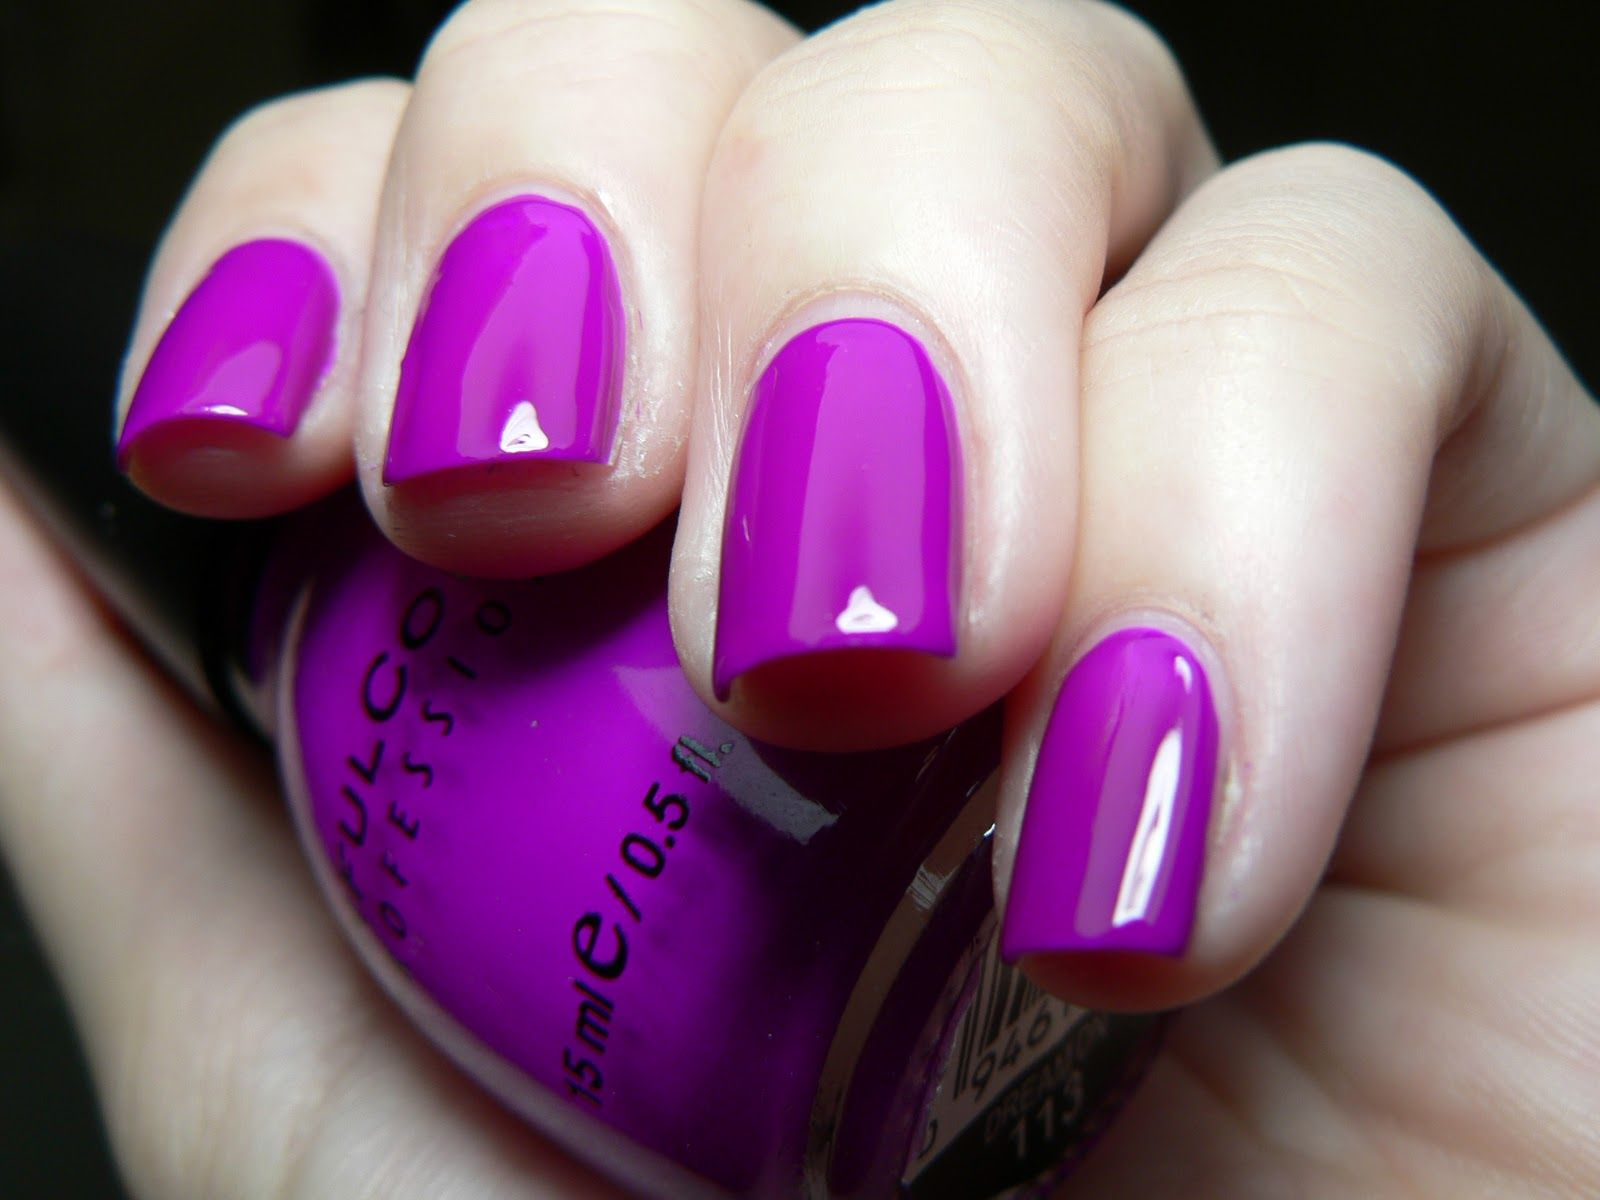 Sinful Colors - Dream On. this is going on my nails tomorrow ...